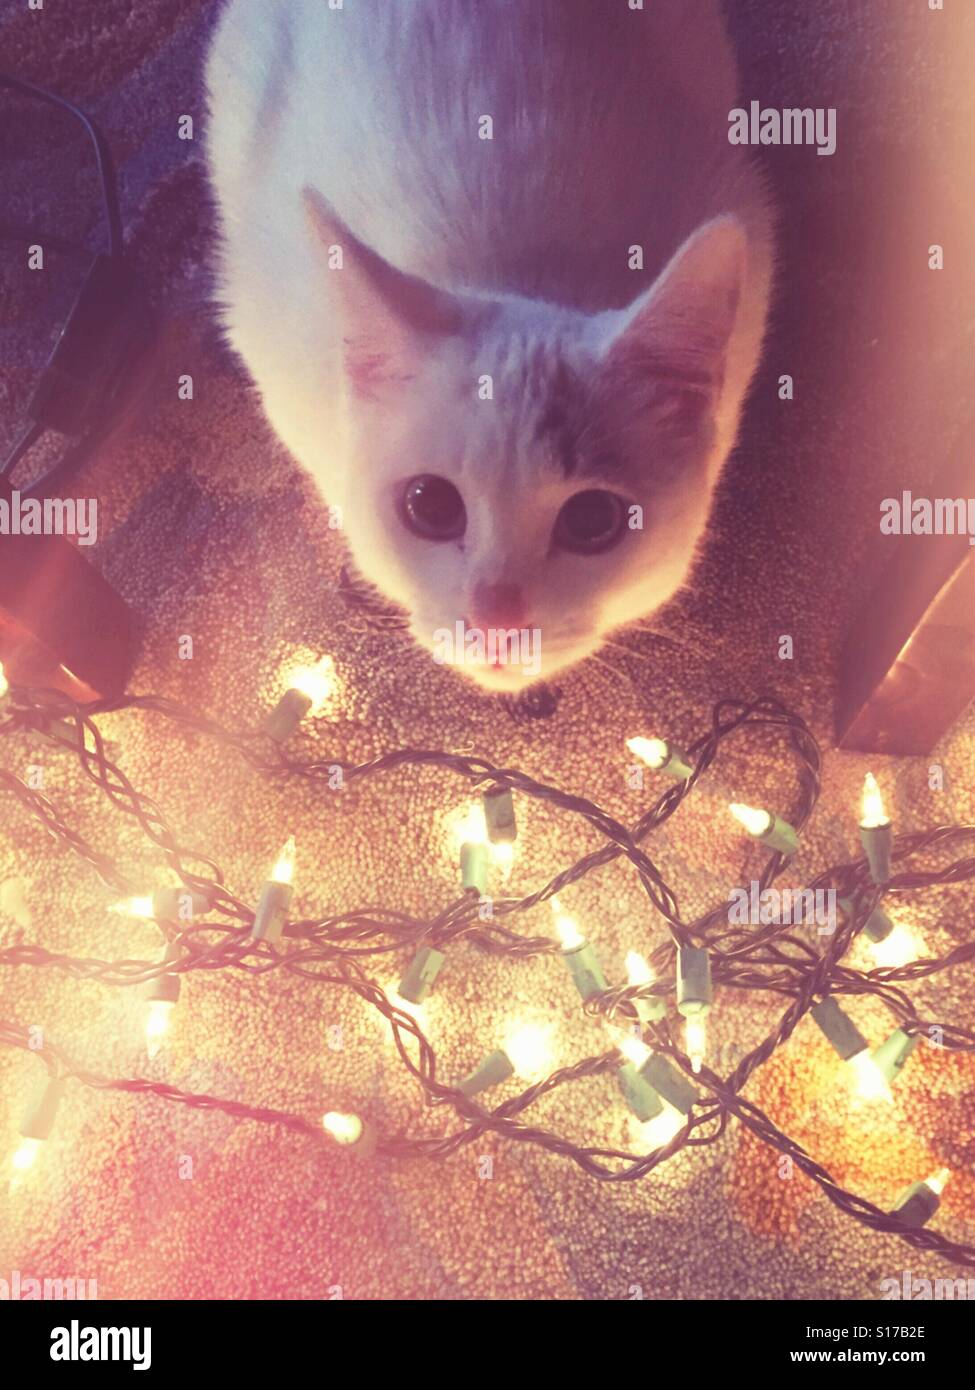 Cute kitty sits by twinkly Christmas lights. - Stock Image